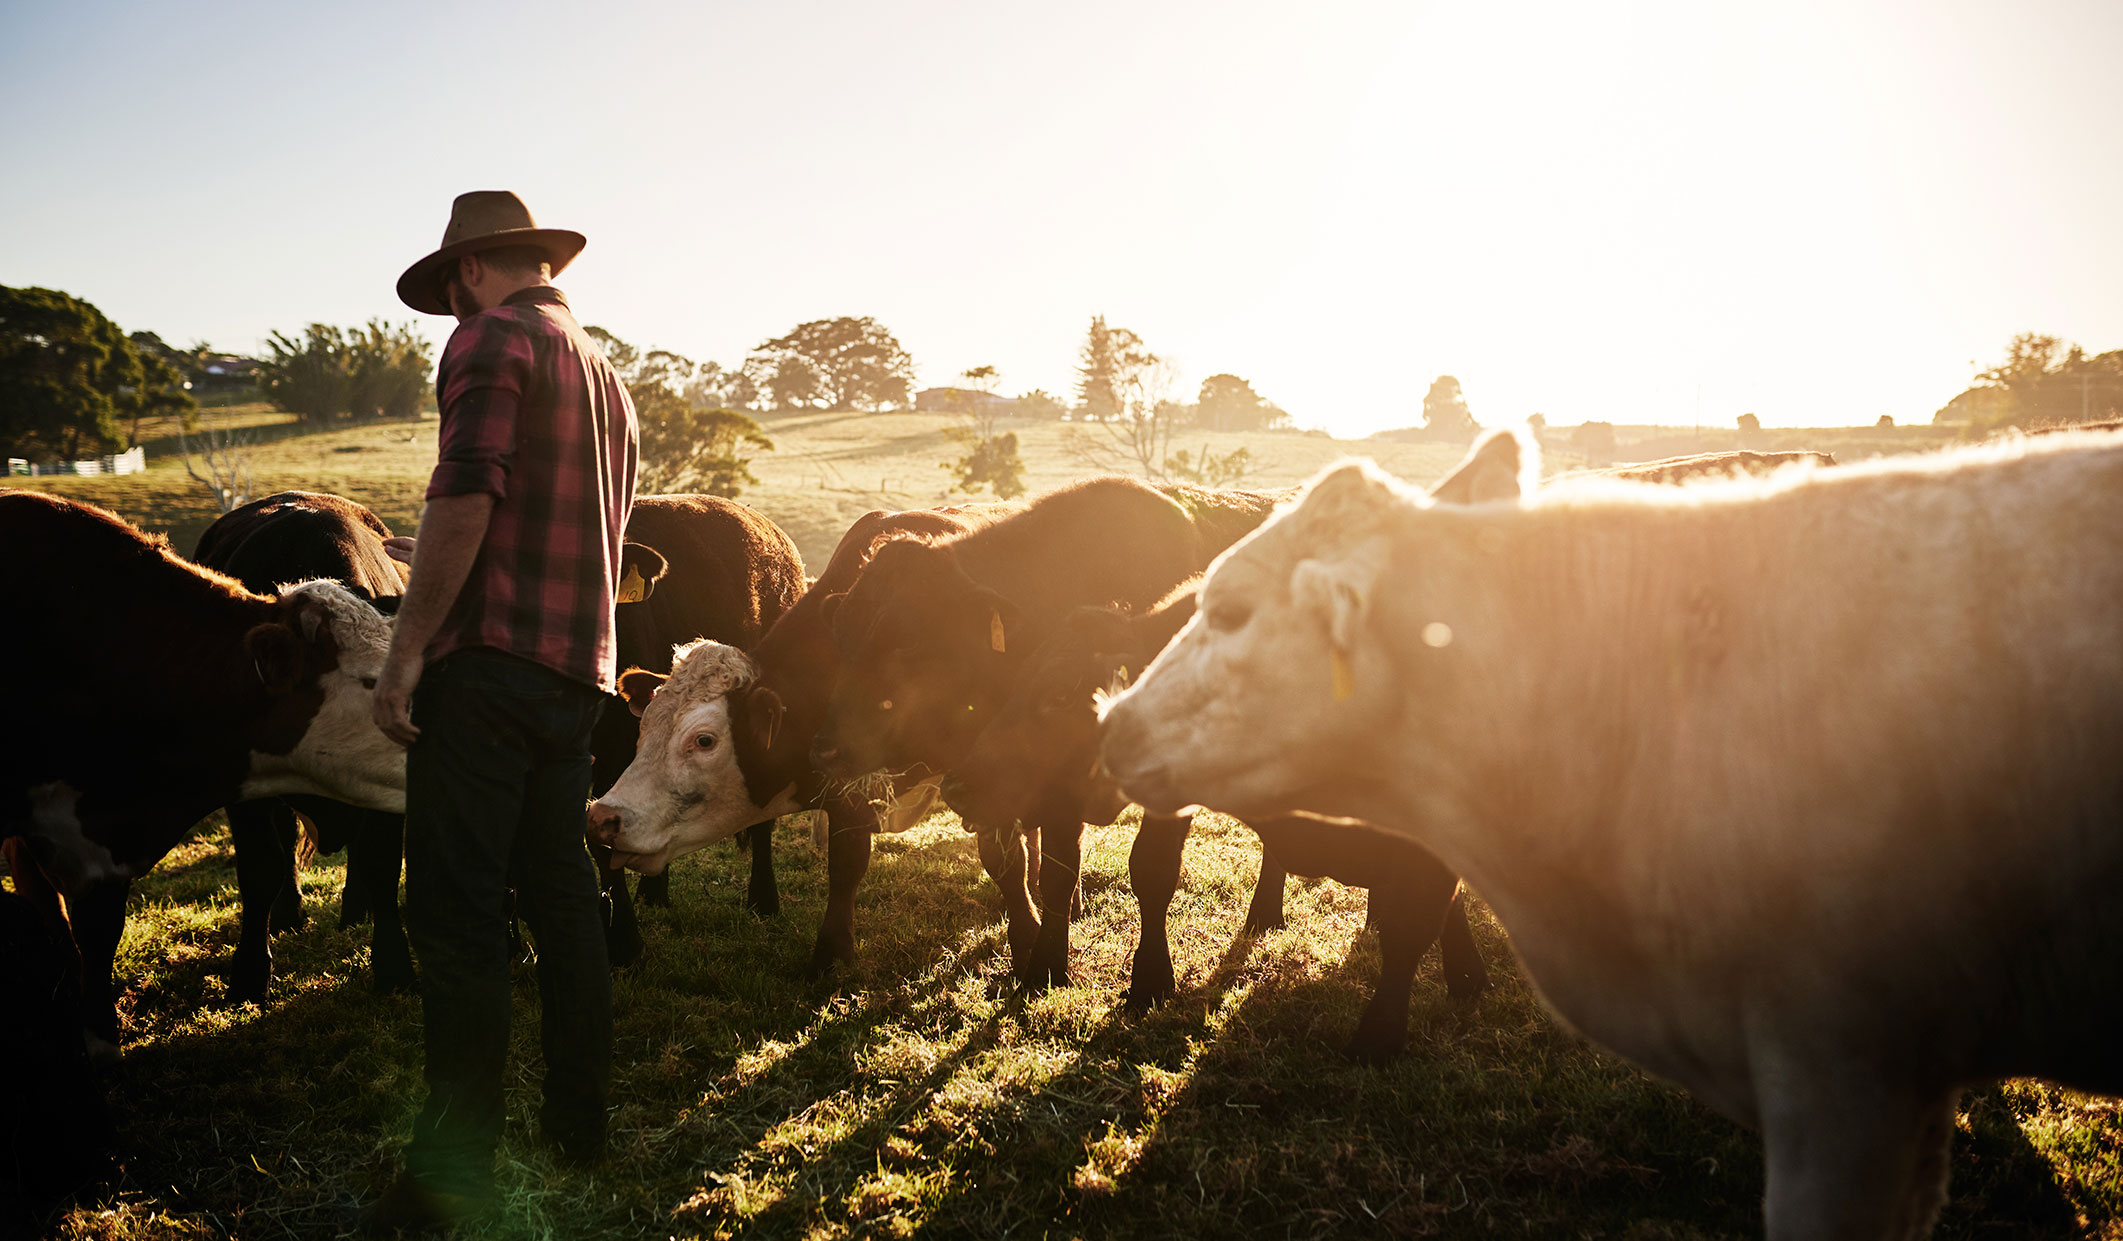 Farmer tending to livestock on an Australian farm